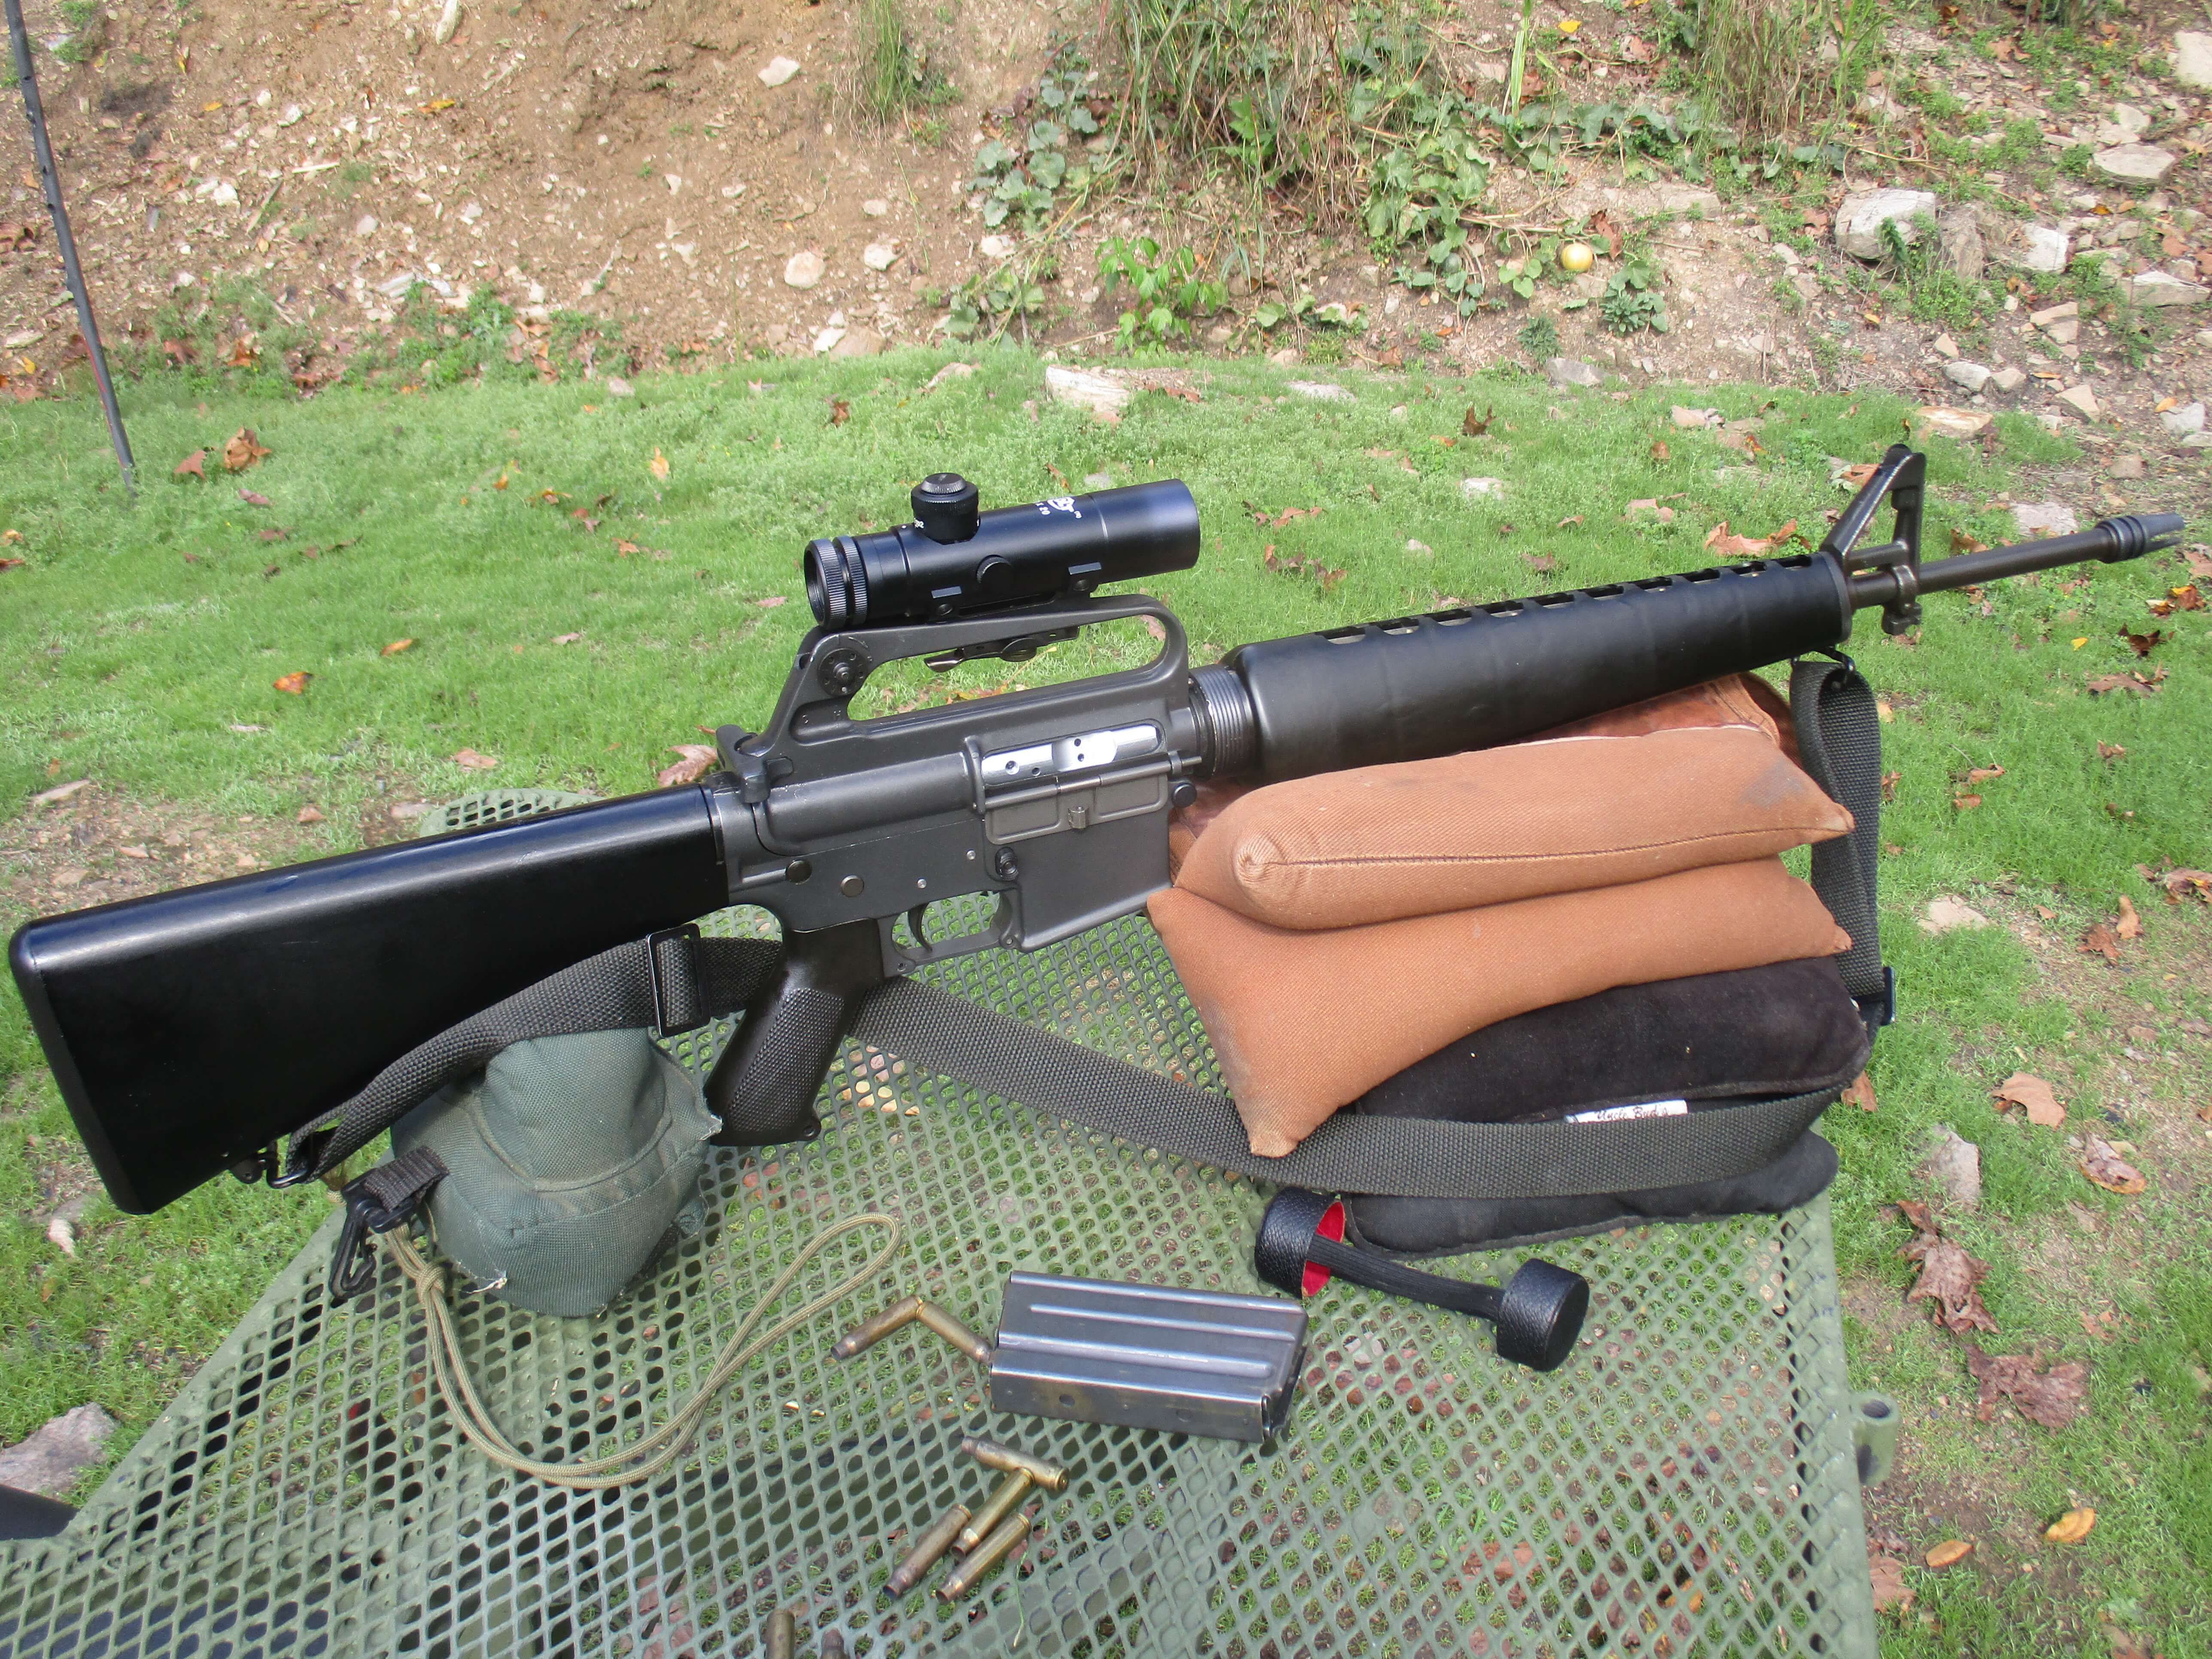 Bruce Piatt shot an AR at a time when optics options included the colt 3x.